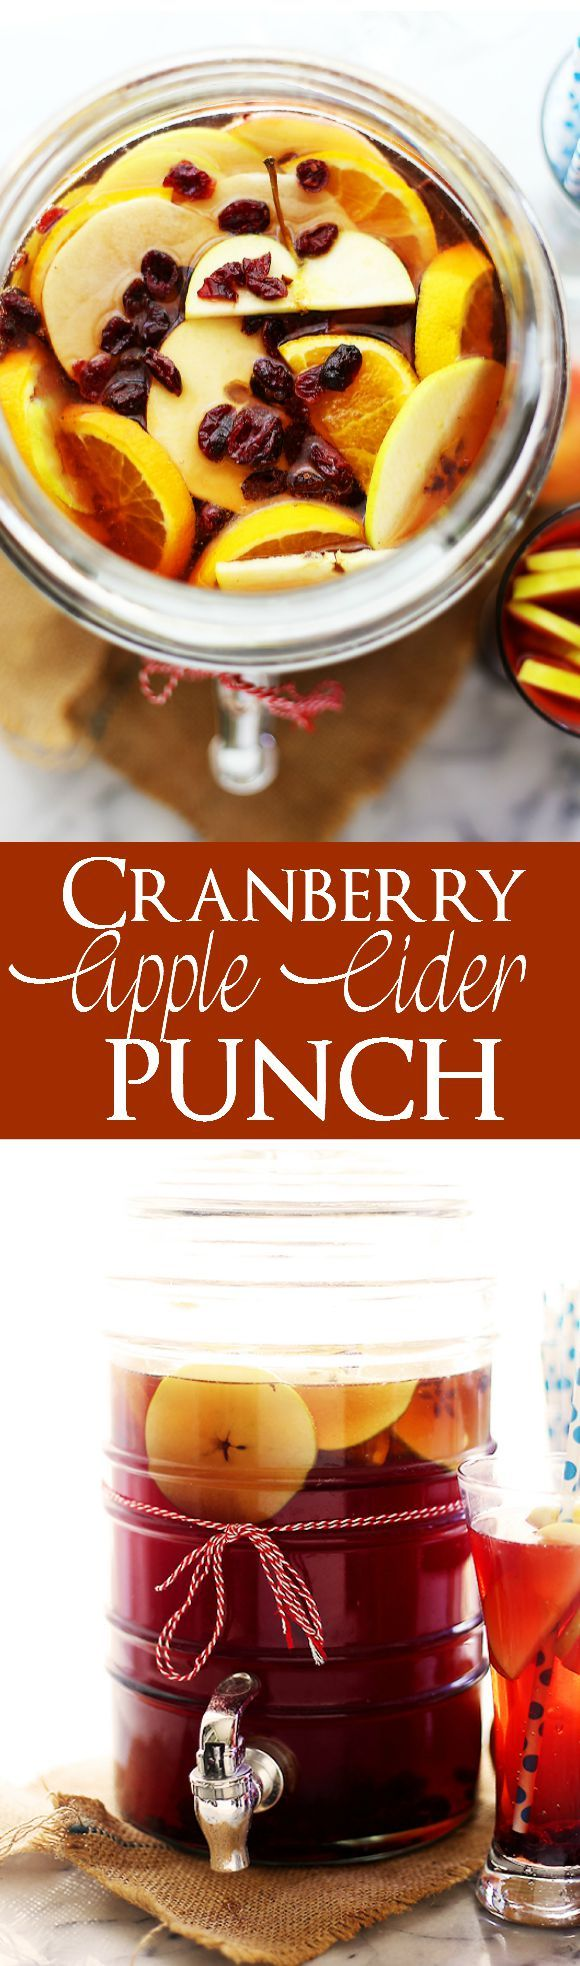 Fall punch recipes easy